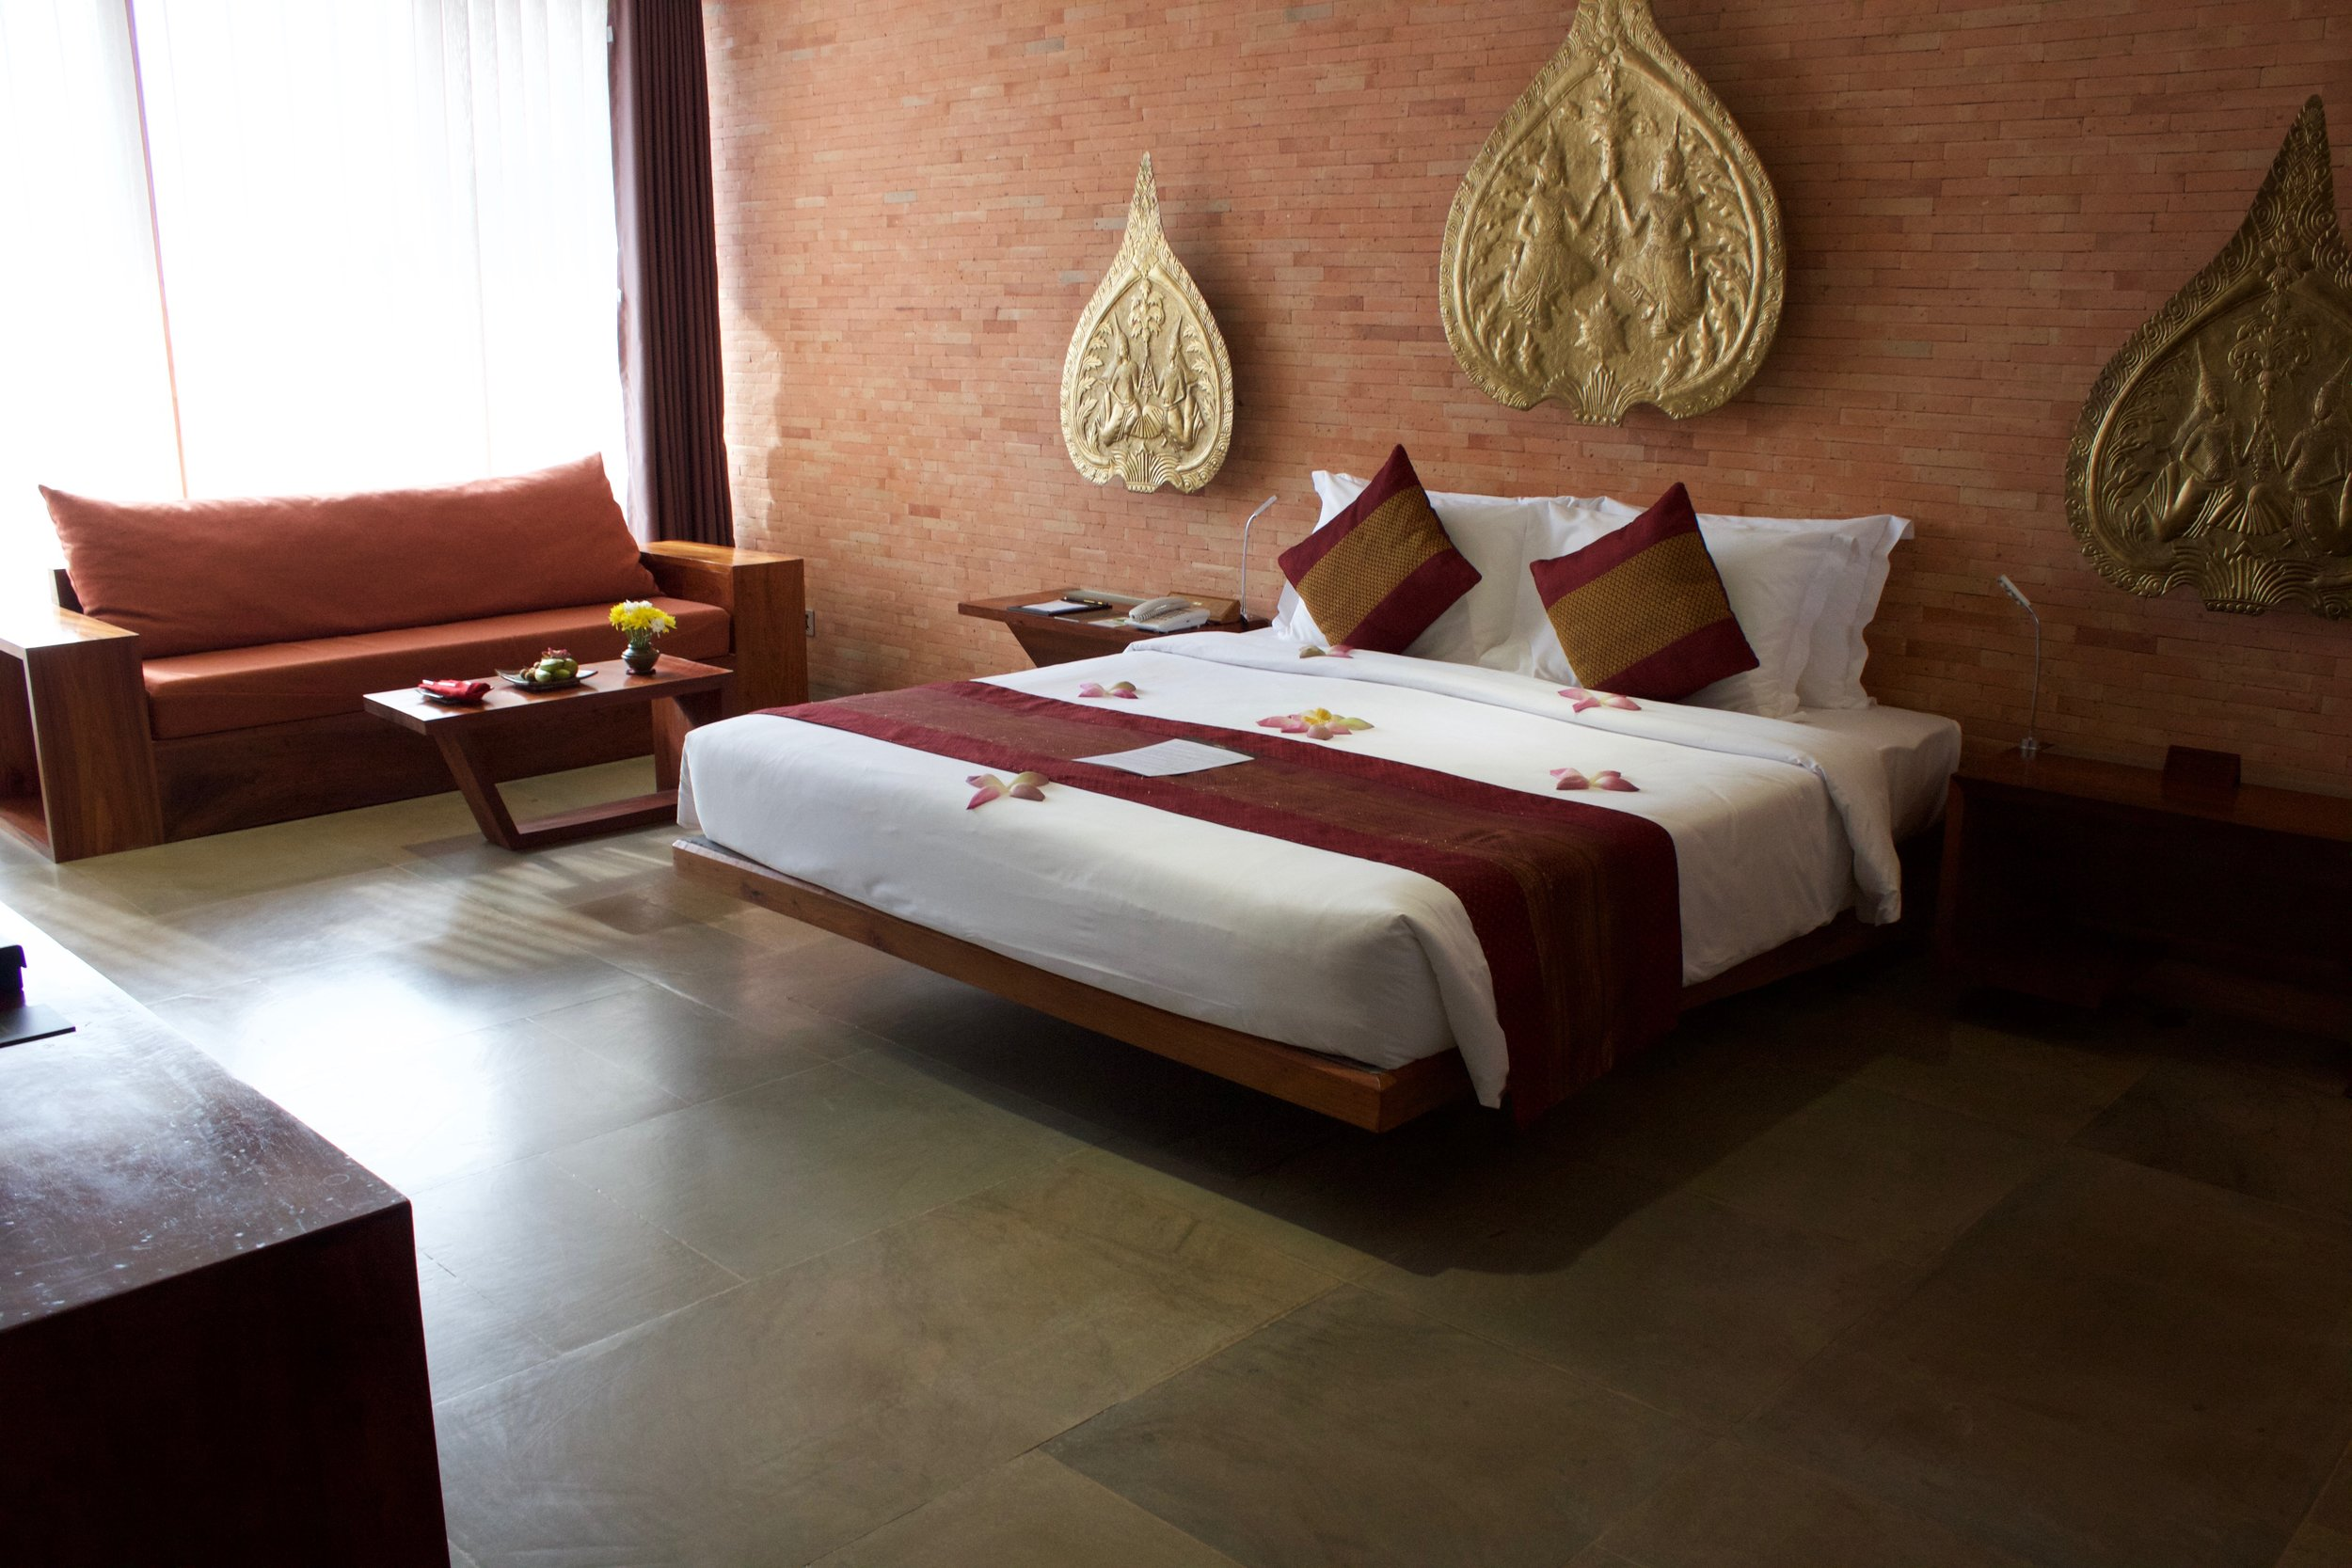 Golden-temple-residence-bedroom.jpg